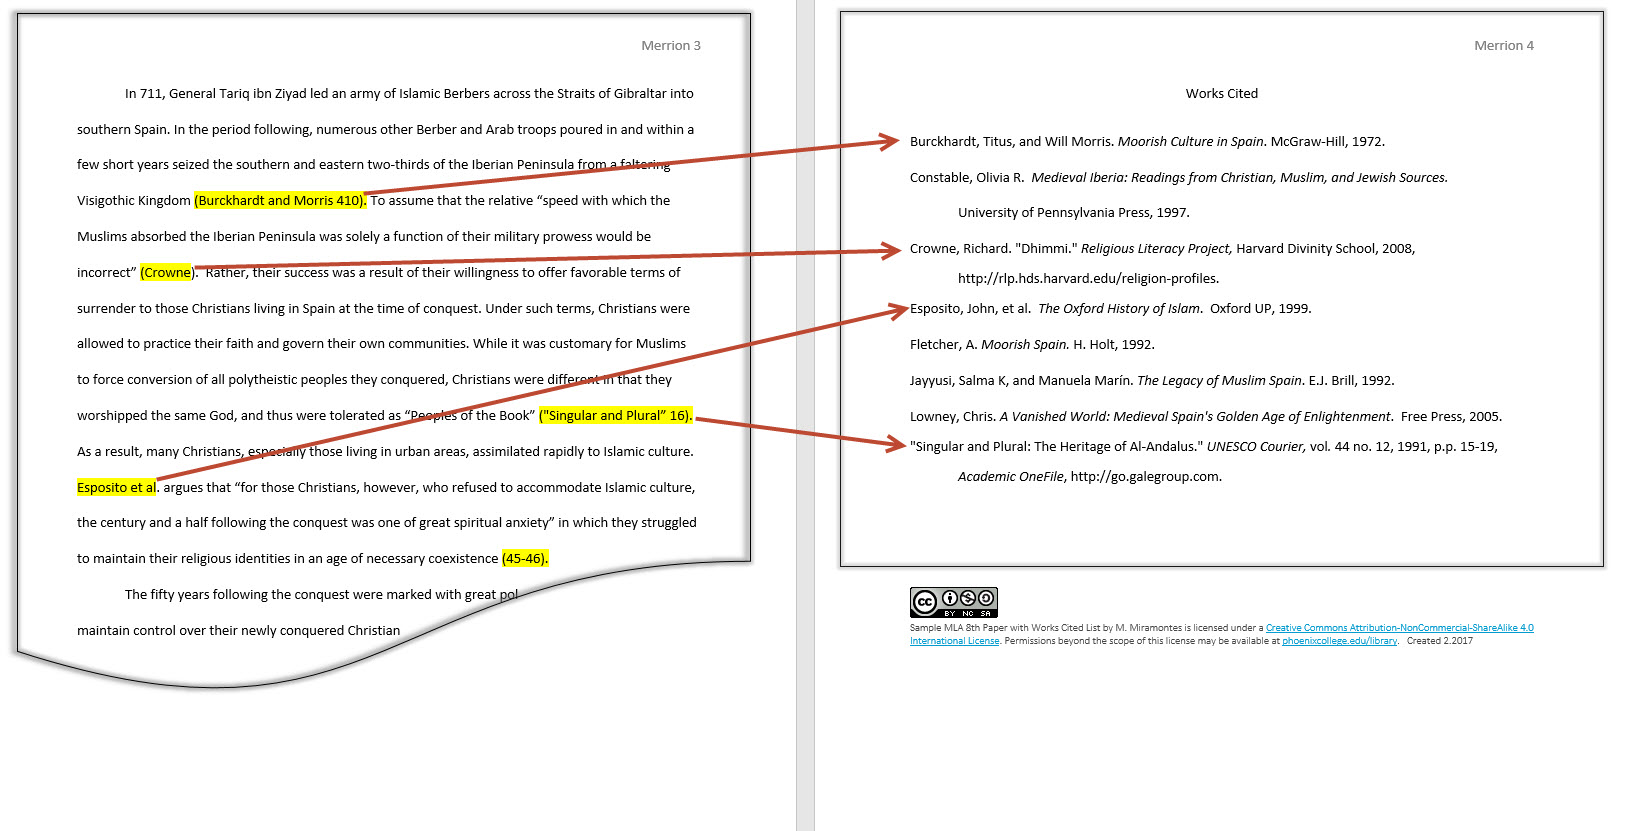 008 Example Works Cited Research Paper Mla In Text